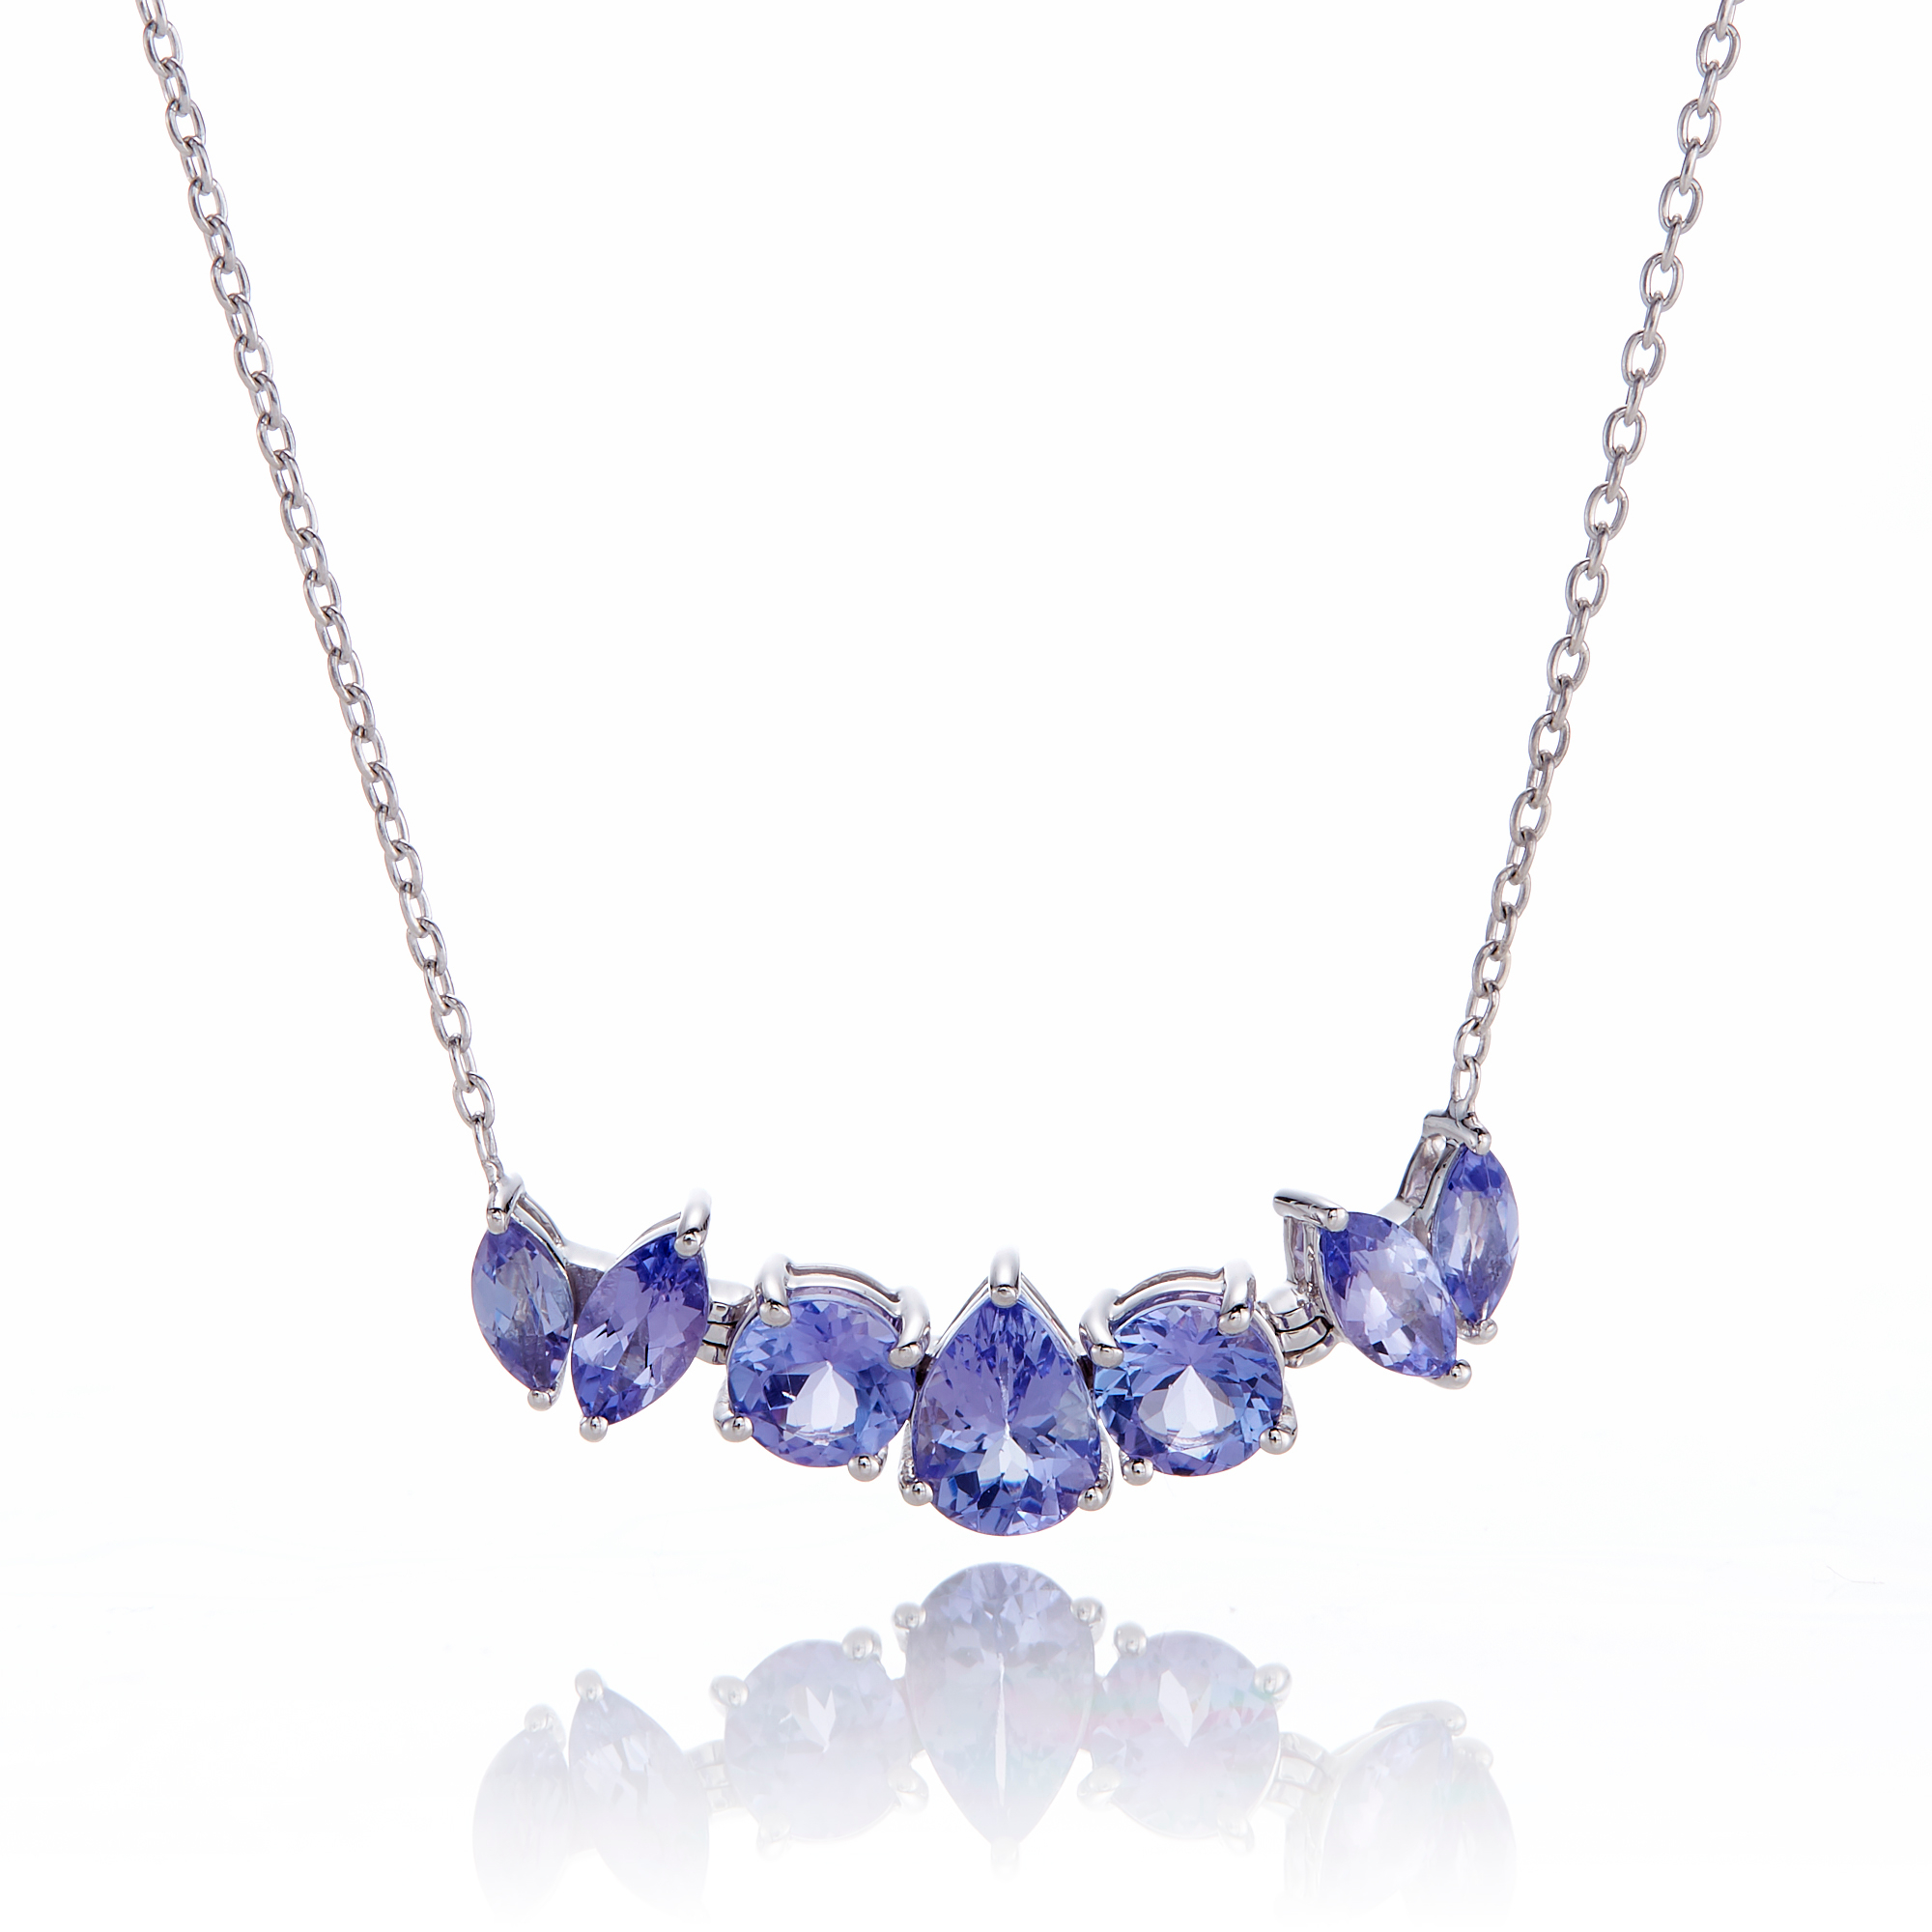 Gump's 7-Stone Tanzanite Pendant Necklace